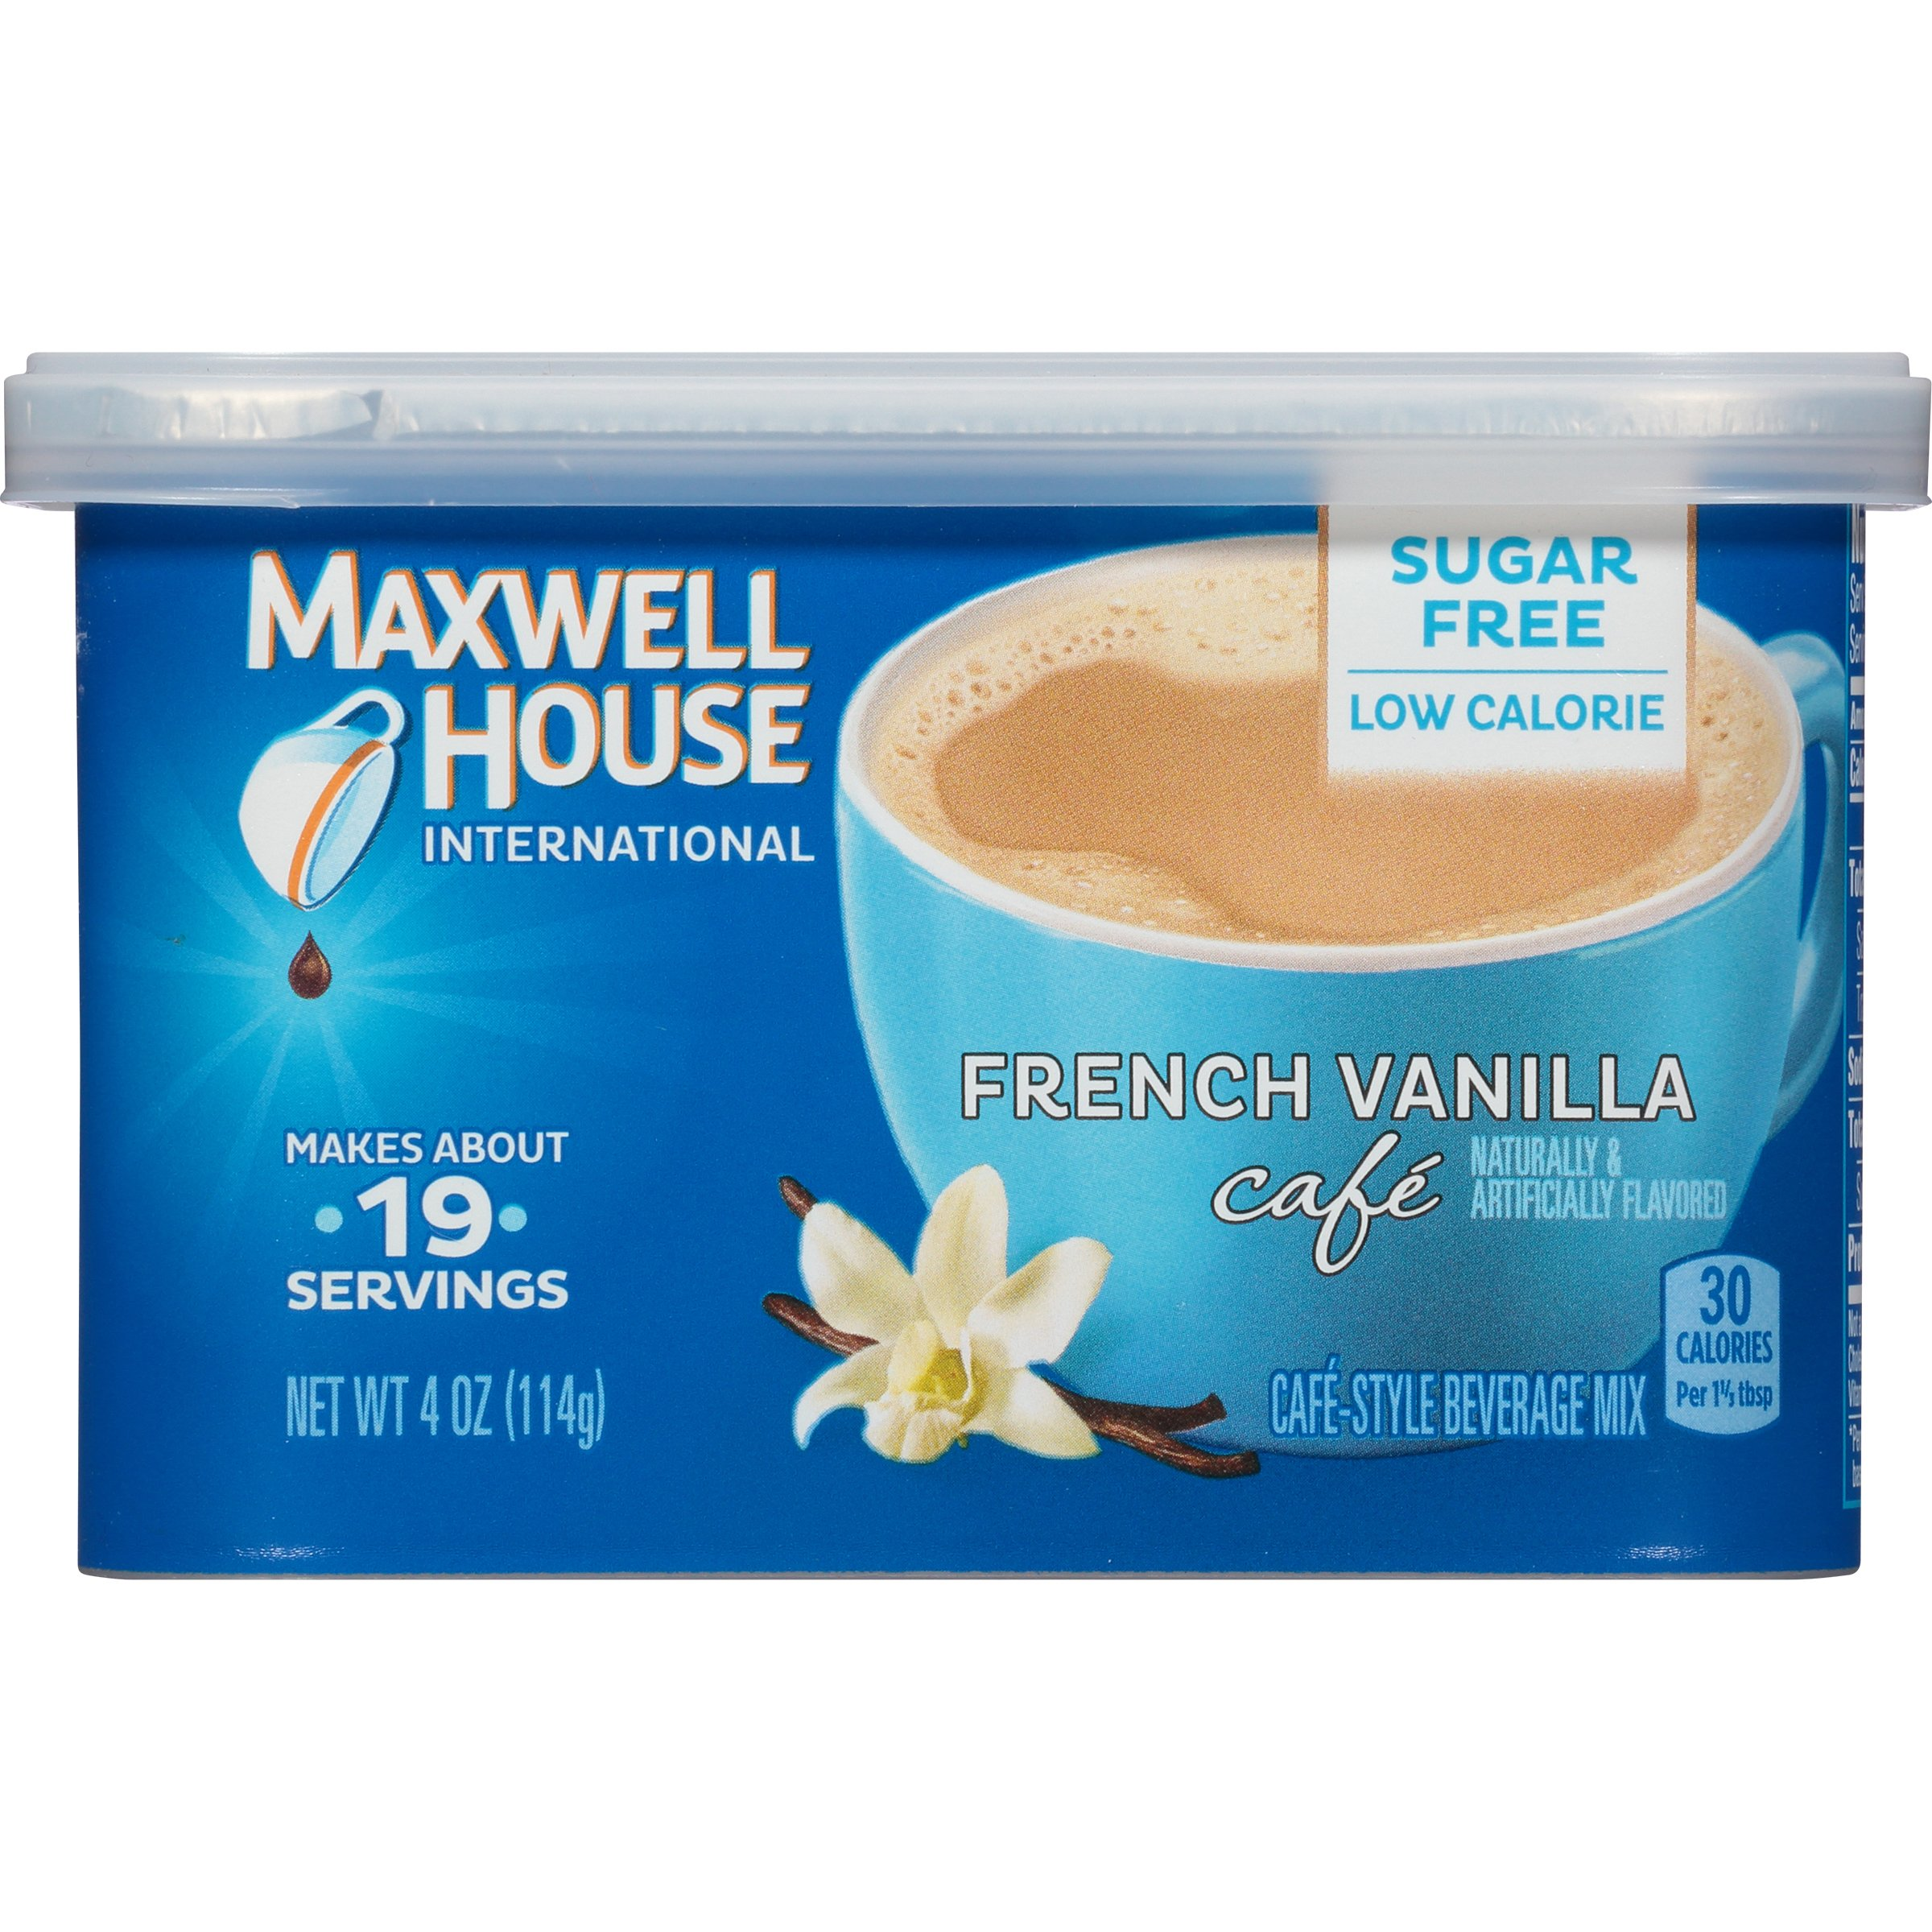 Maxwell House International Cafe Flavored Instant Coffee, French Vanilla, Sugar Free, 4 Ounce Canister (Pack of 4)